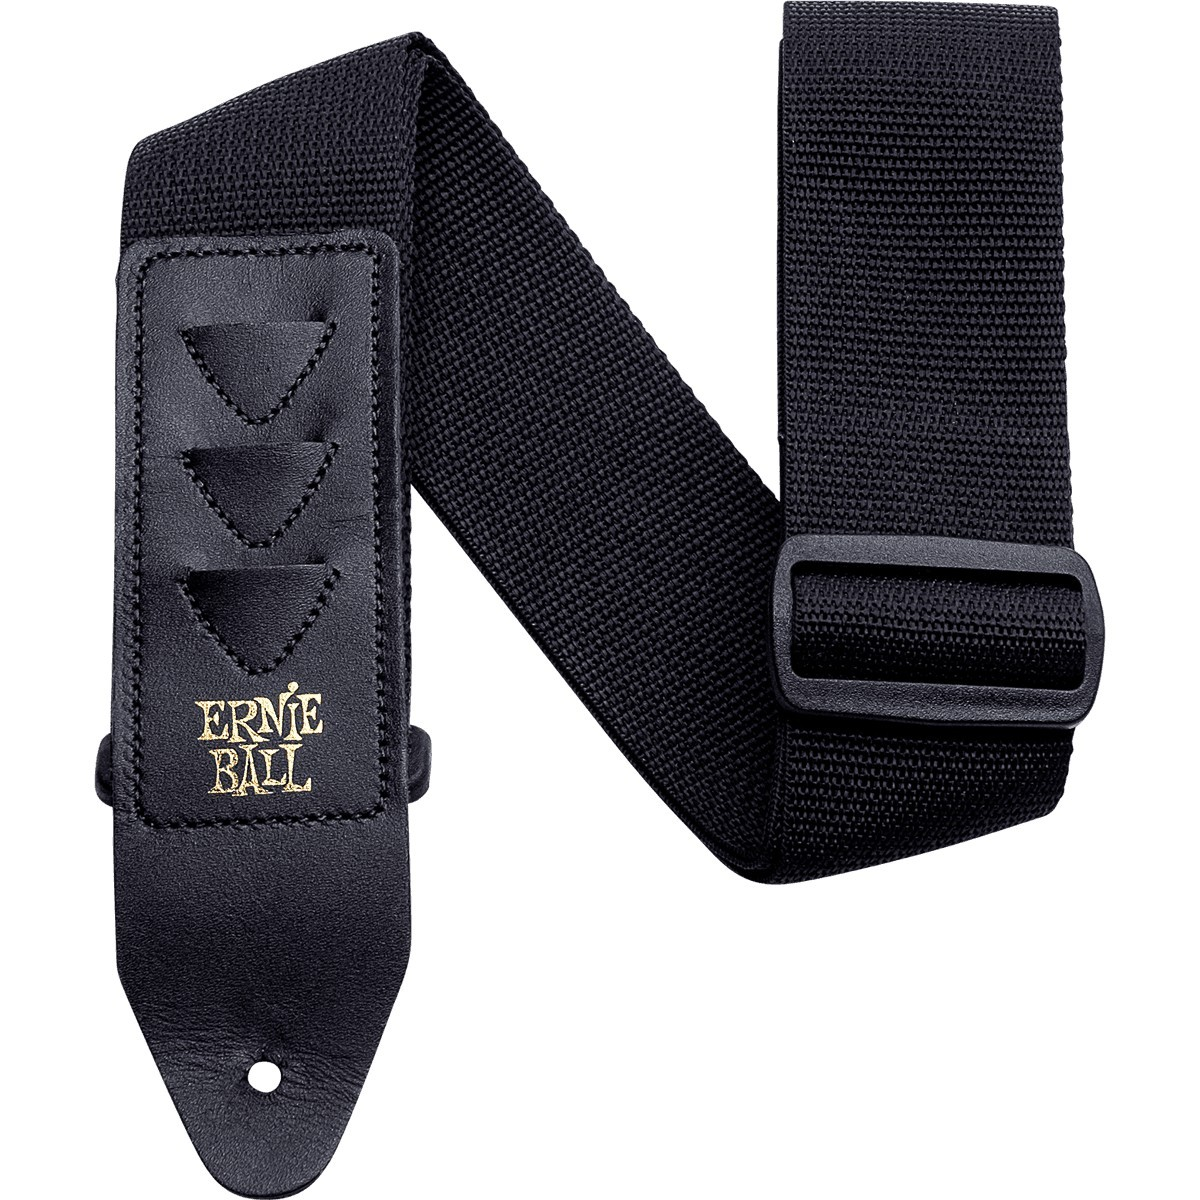 ERNIE BALL Sangle Pickholder